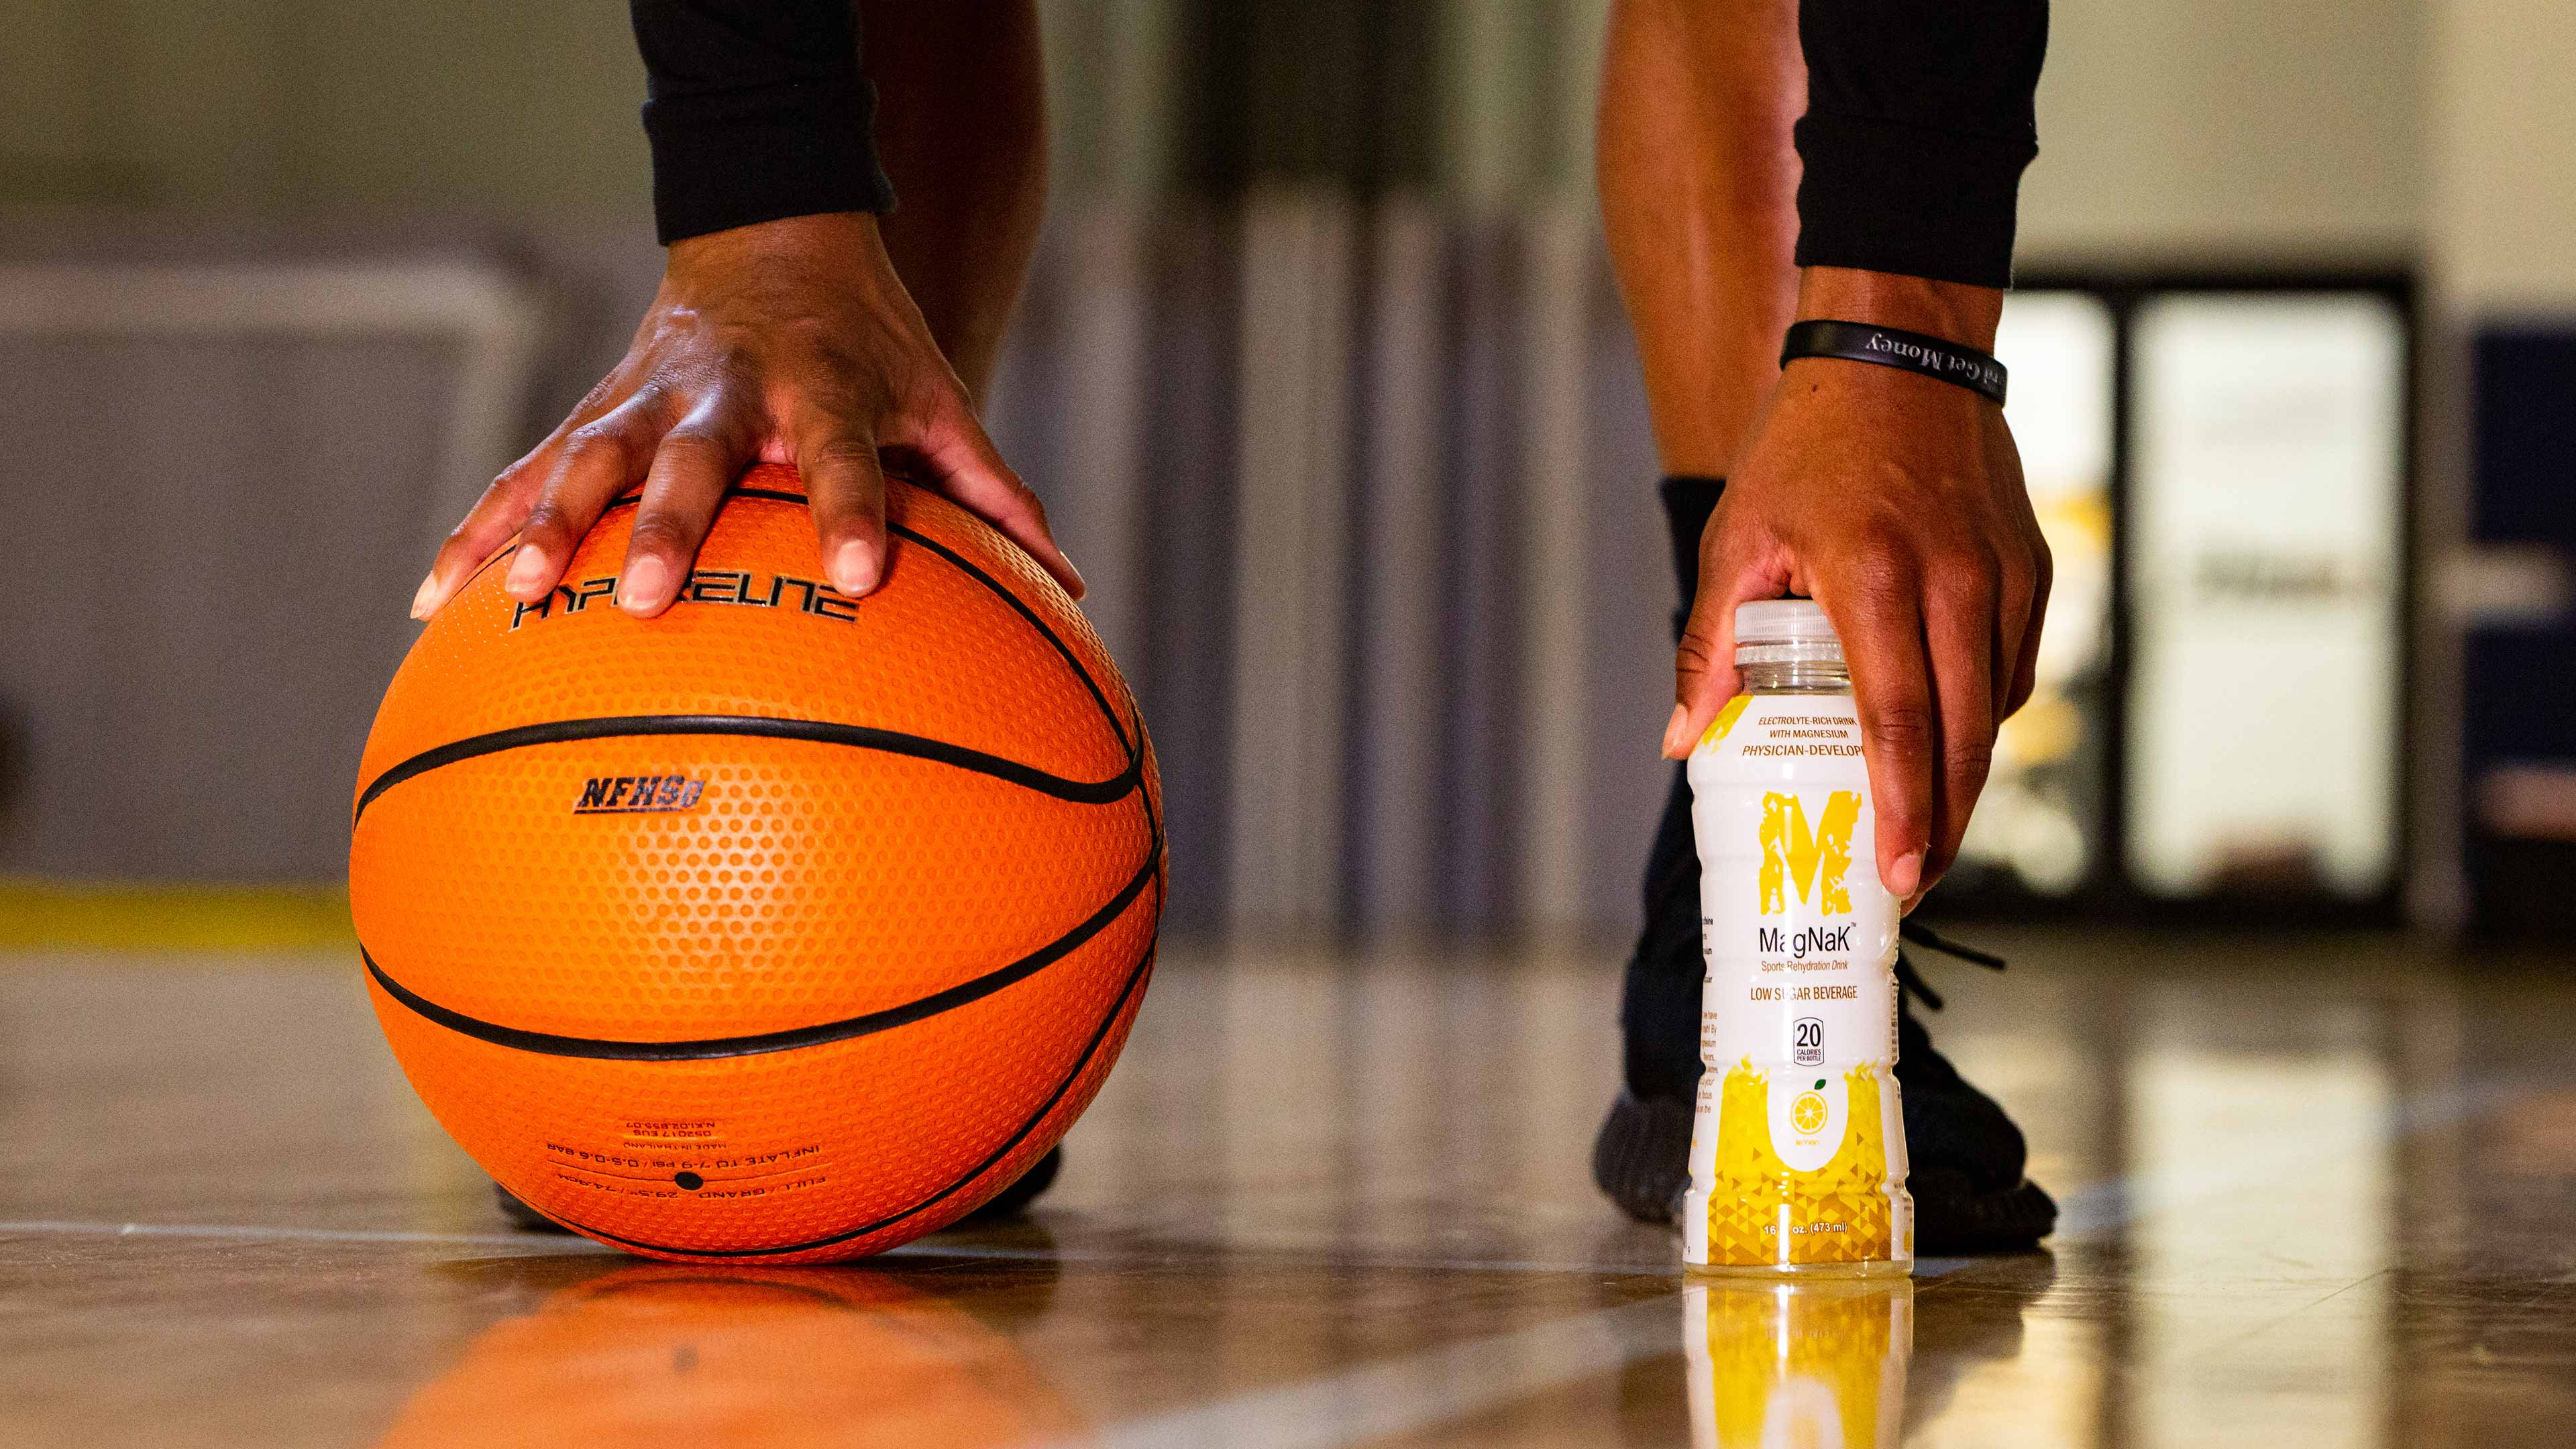 Magnak Gray Mountain Sports Drink Lifestyle Product Photography by Results Imagery